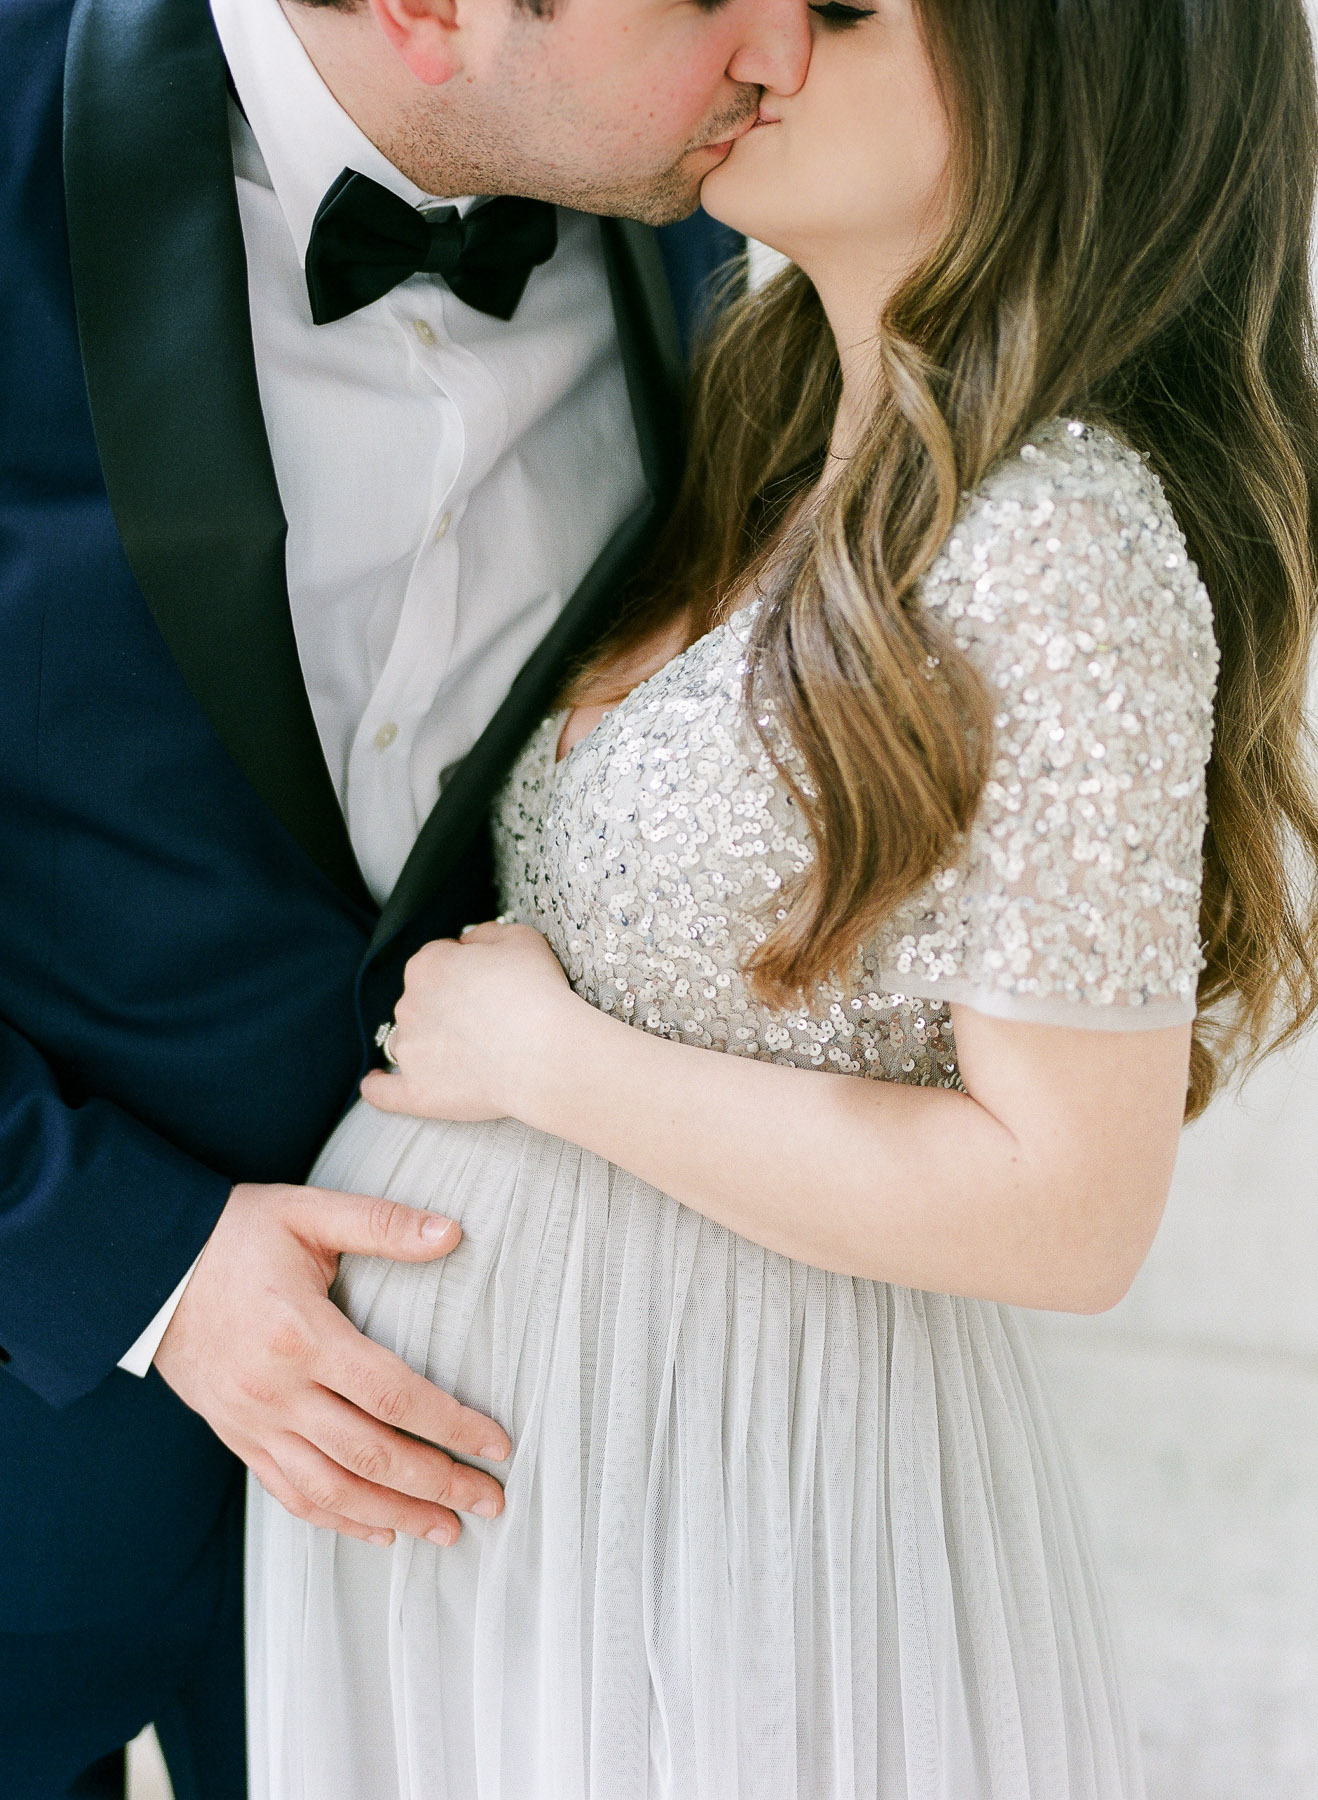 Breathtaking NYC Maternity Photos